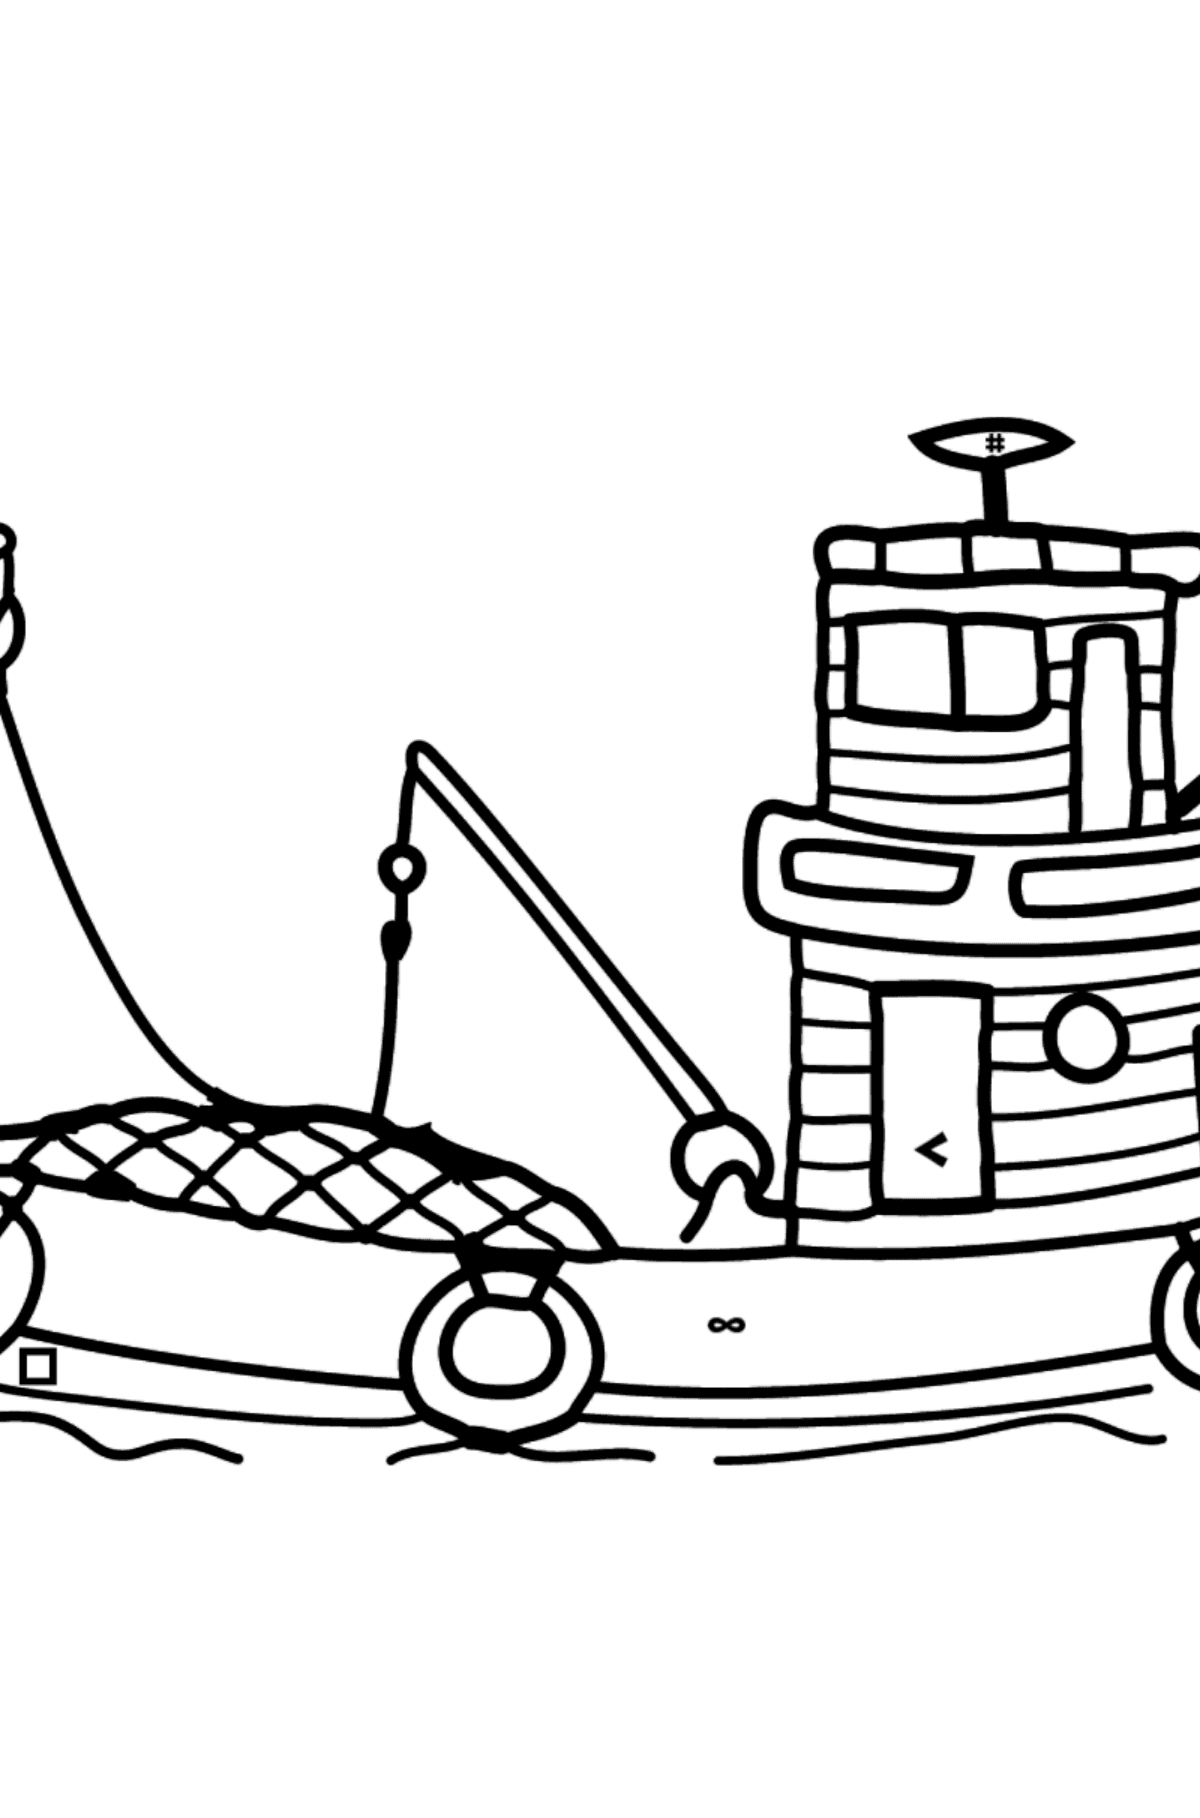 Coloring Page - A Fishing Boat - Coloring by Symbols for Kids